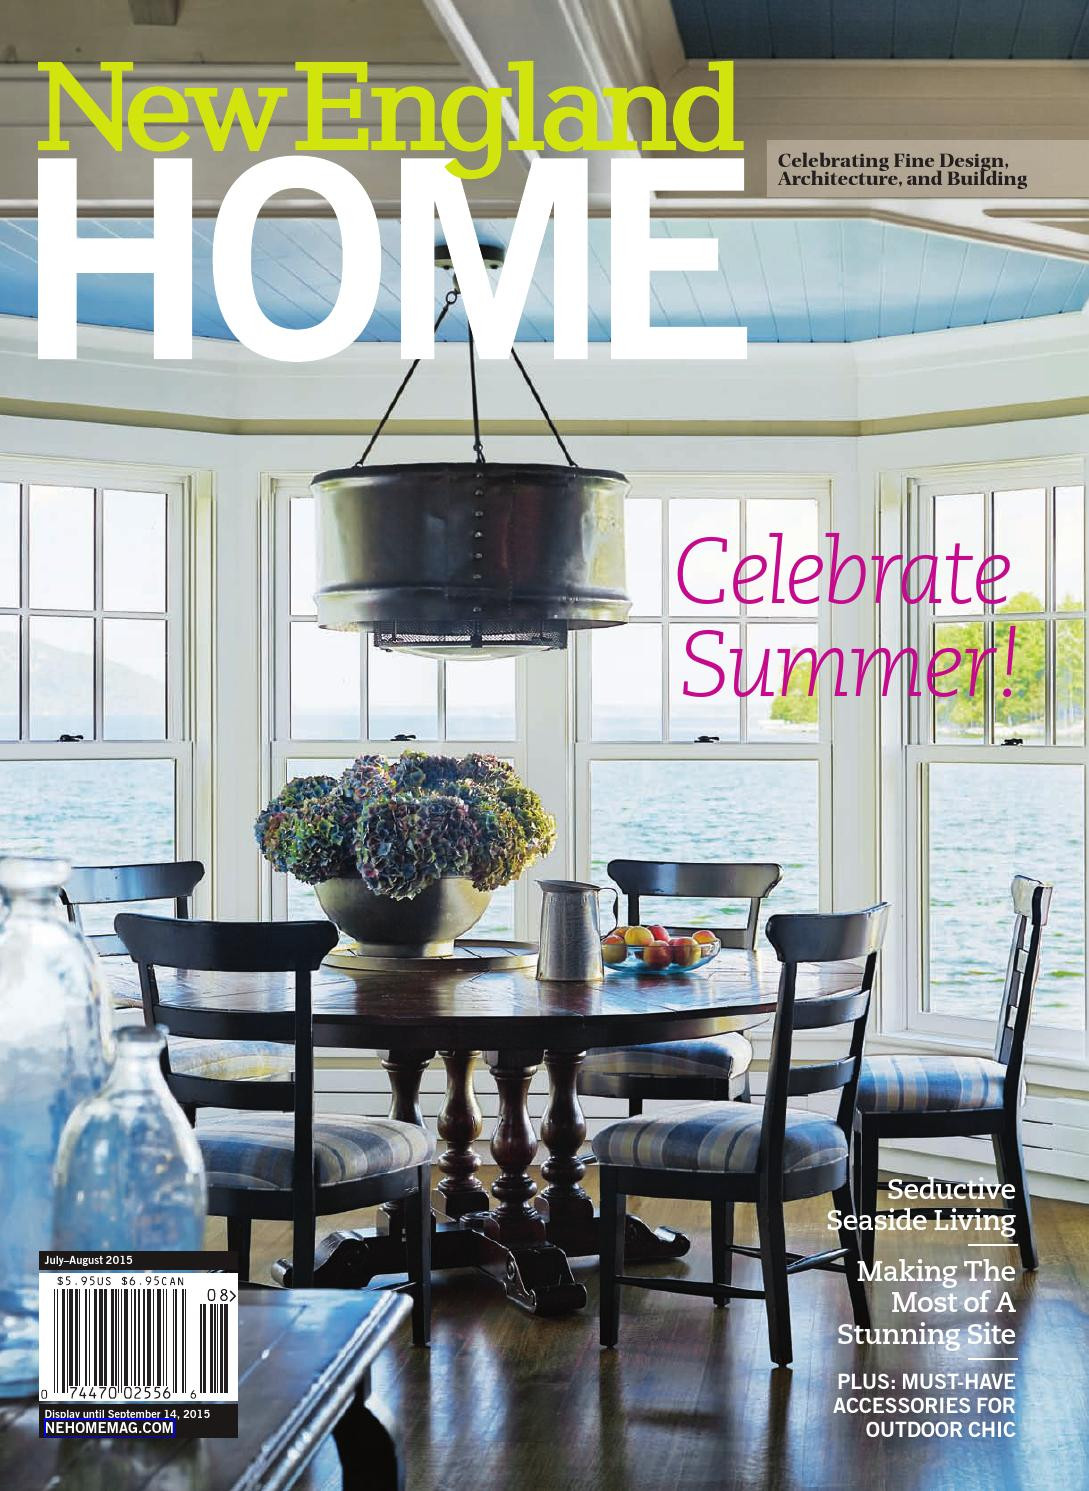 tall recycled glass floor vases of new england home july august 2015 by new england home magazine llc throughout new england home july august 2015 by new england home magazine llc issuu